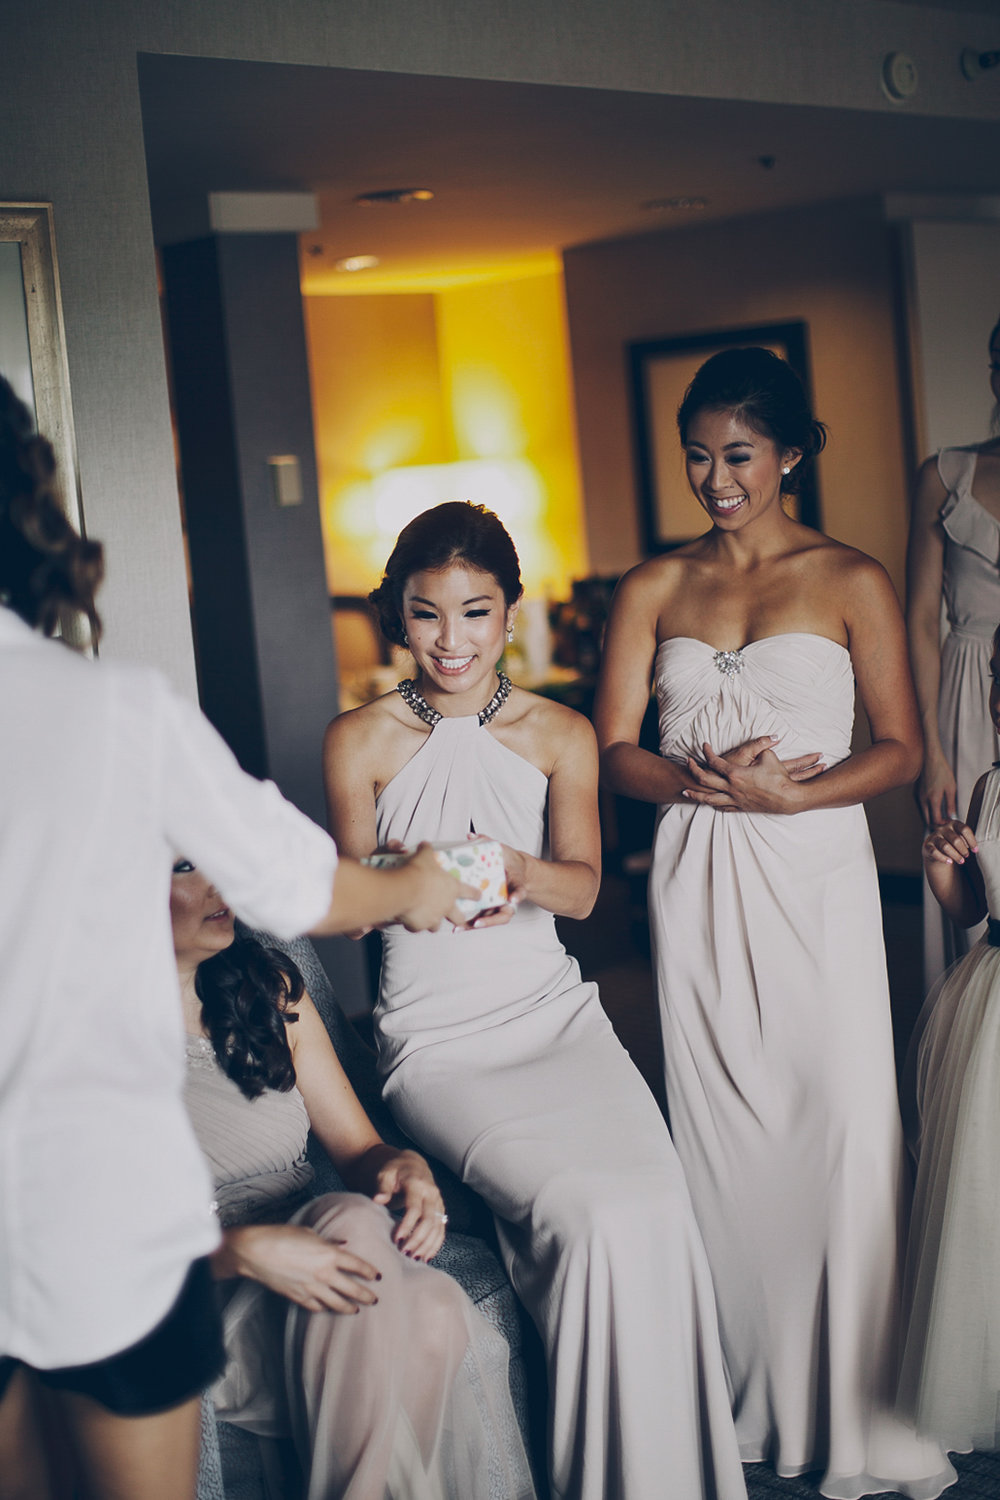 kohl_mansion_wedding_photography_samantha_gene_ebony_siovhan_bokeh_photography_087.jpg